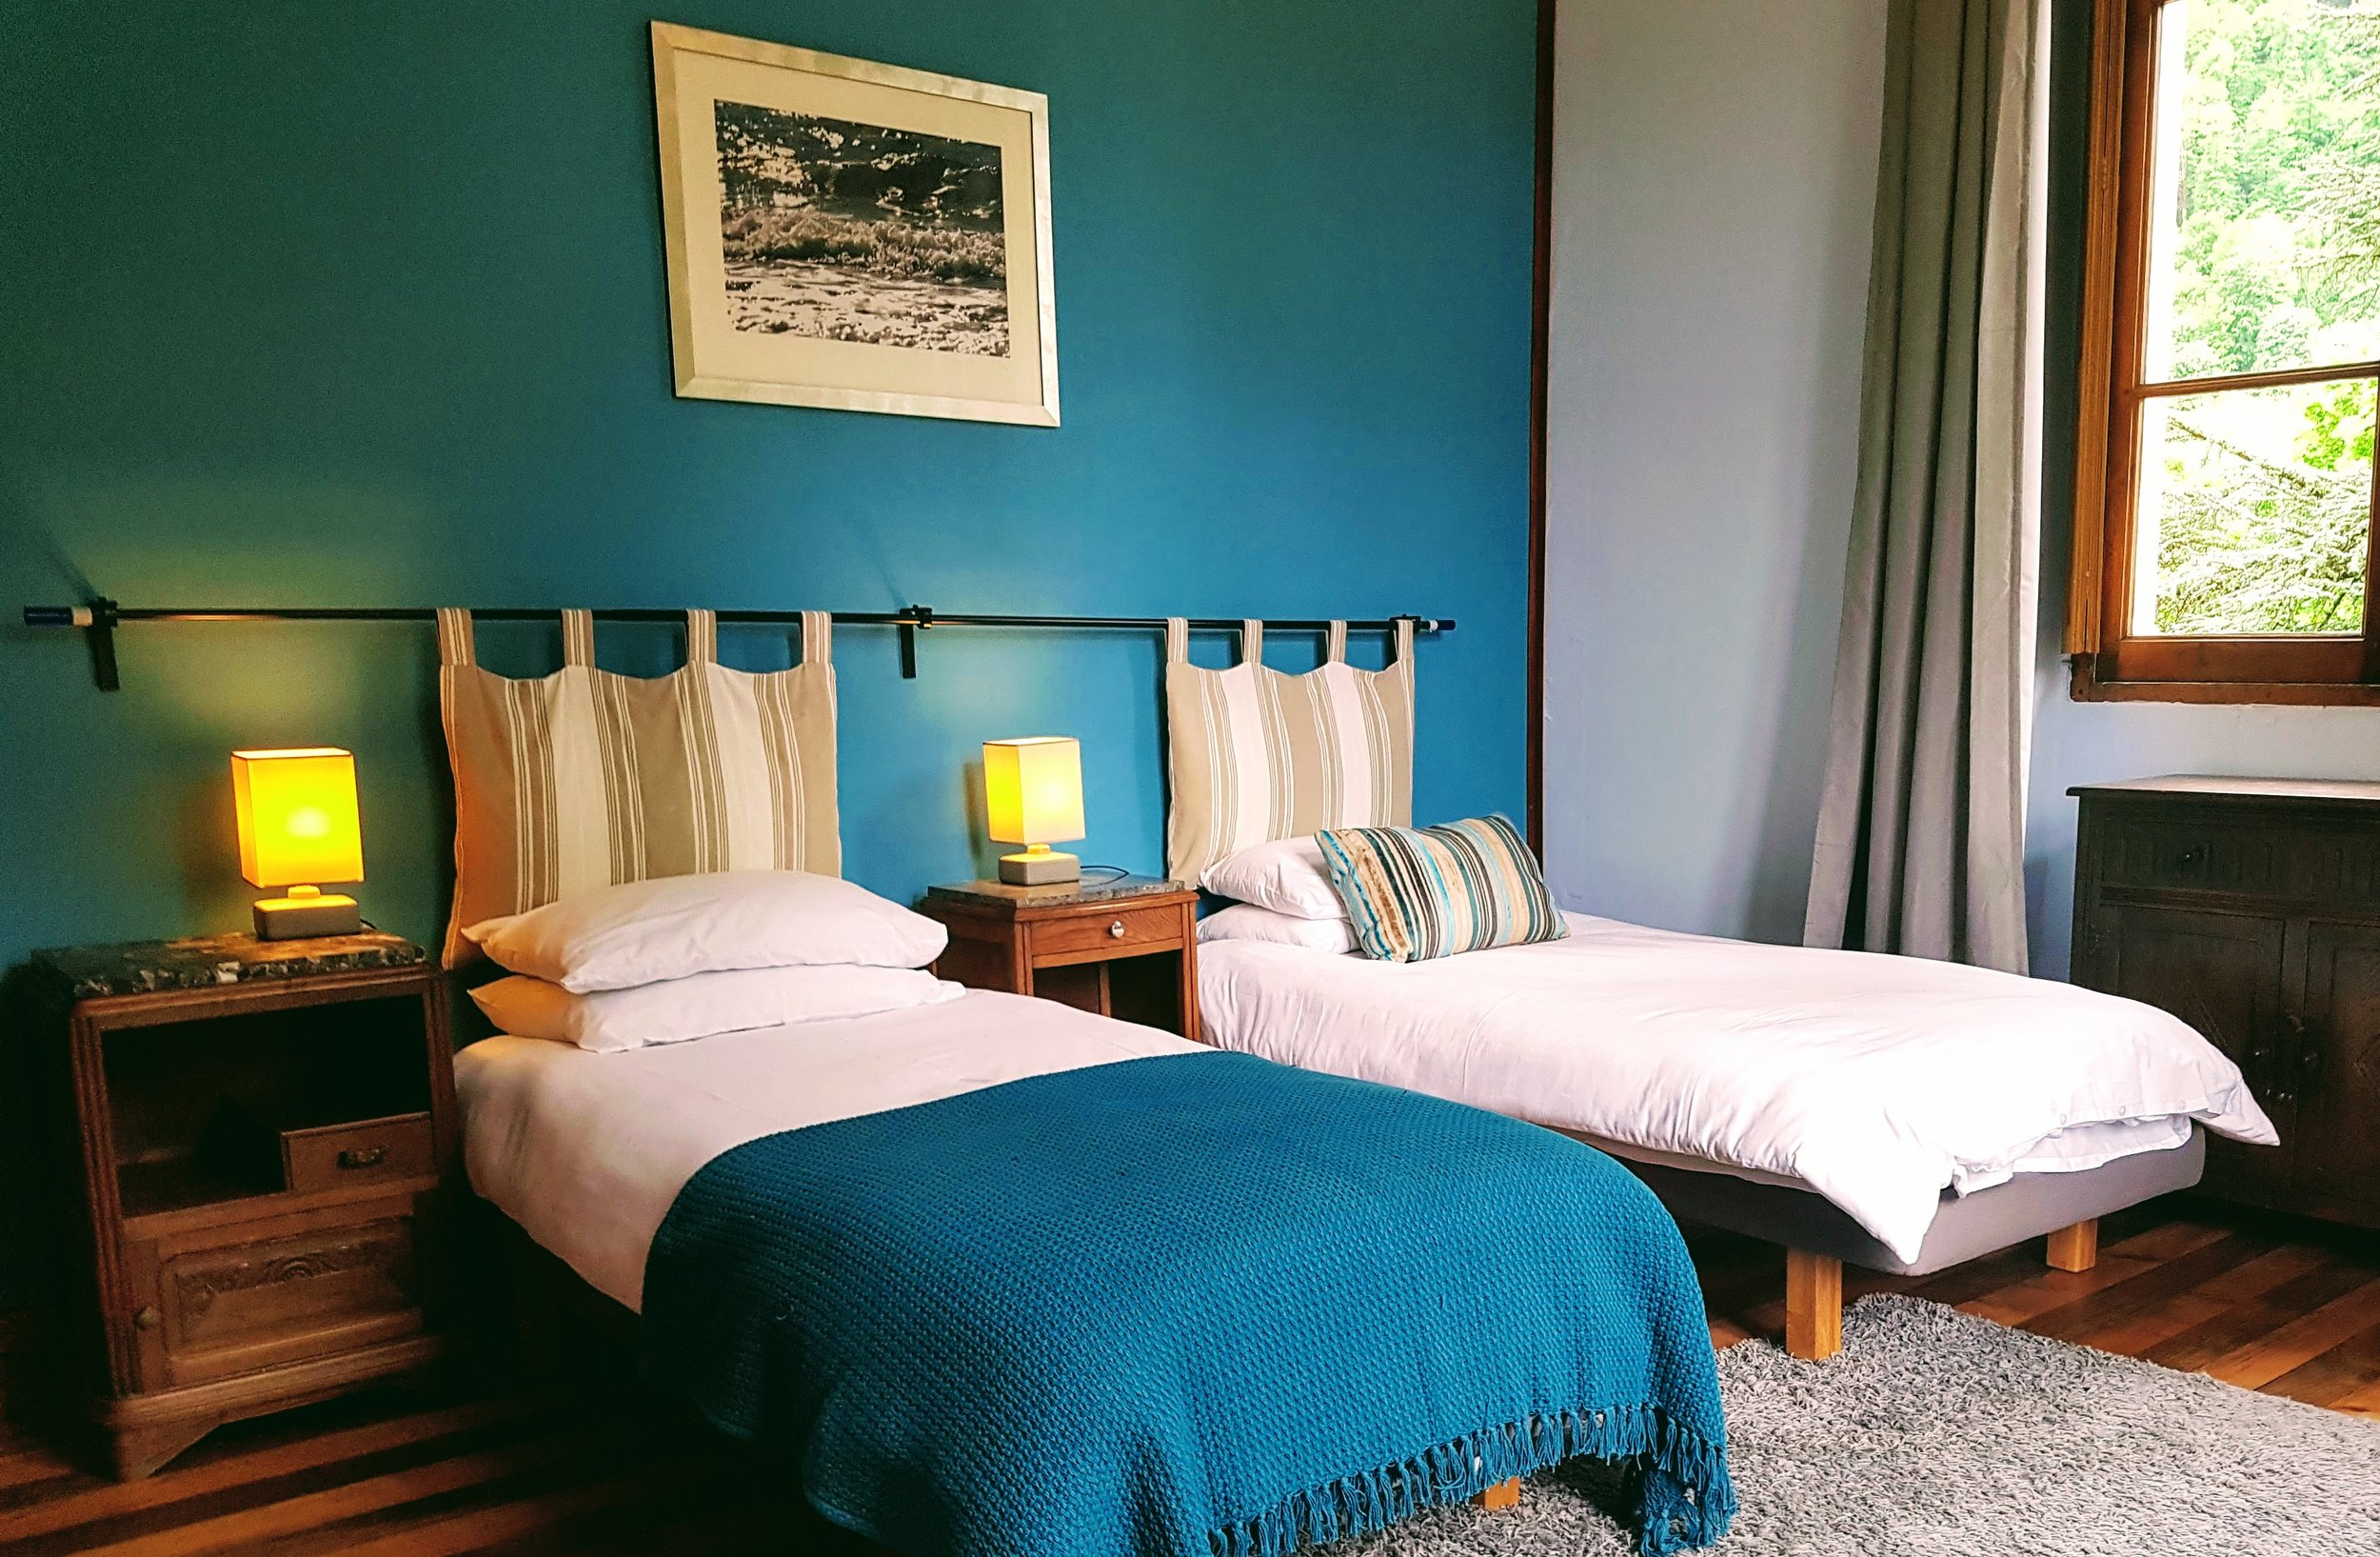 Blue bedroom for two - either in twin beds or a suoer king